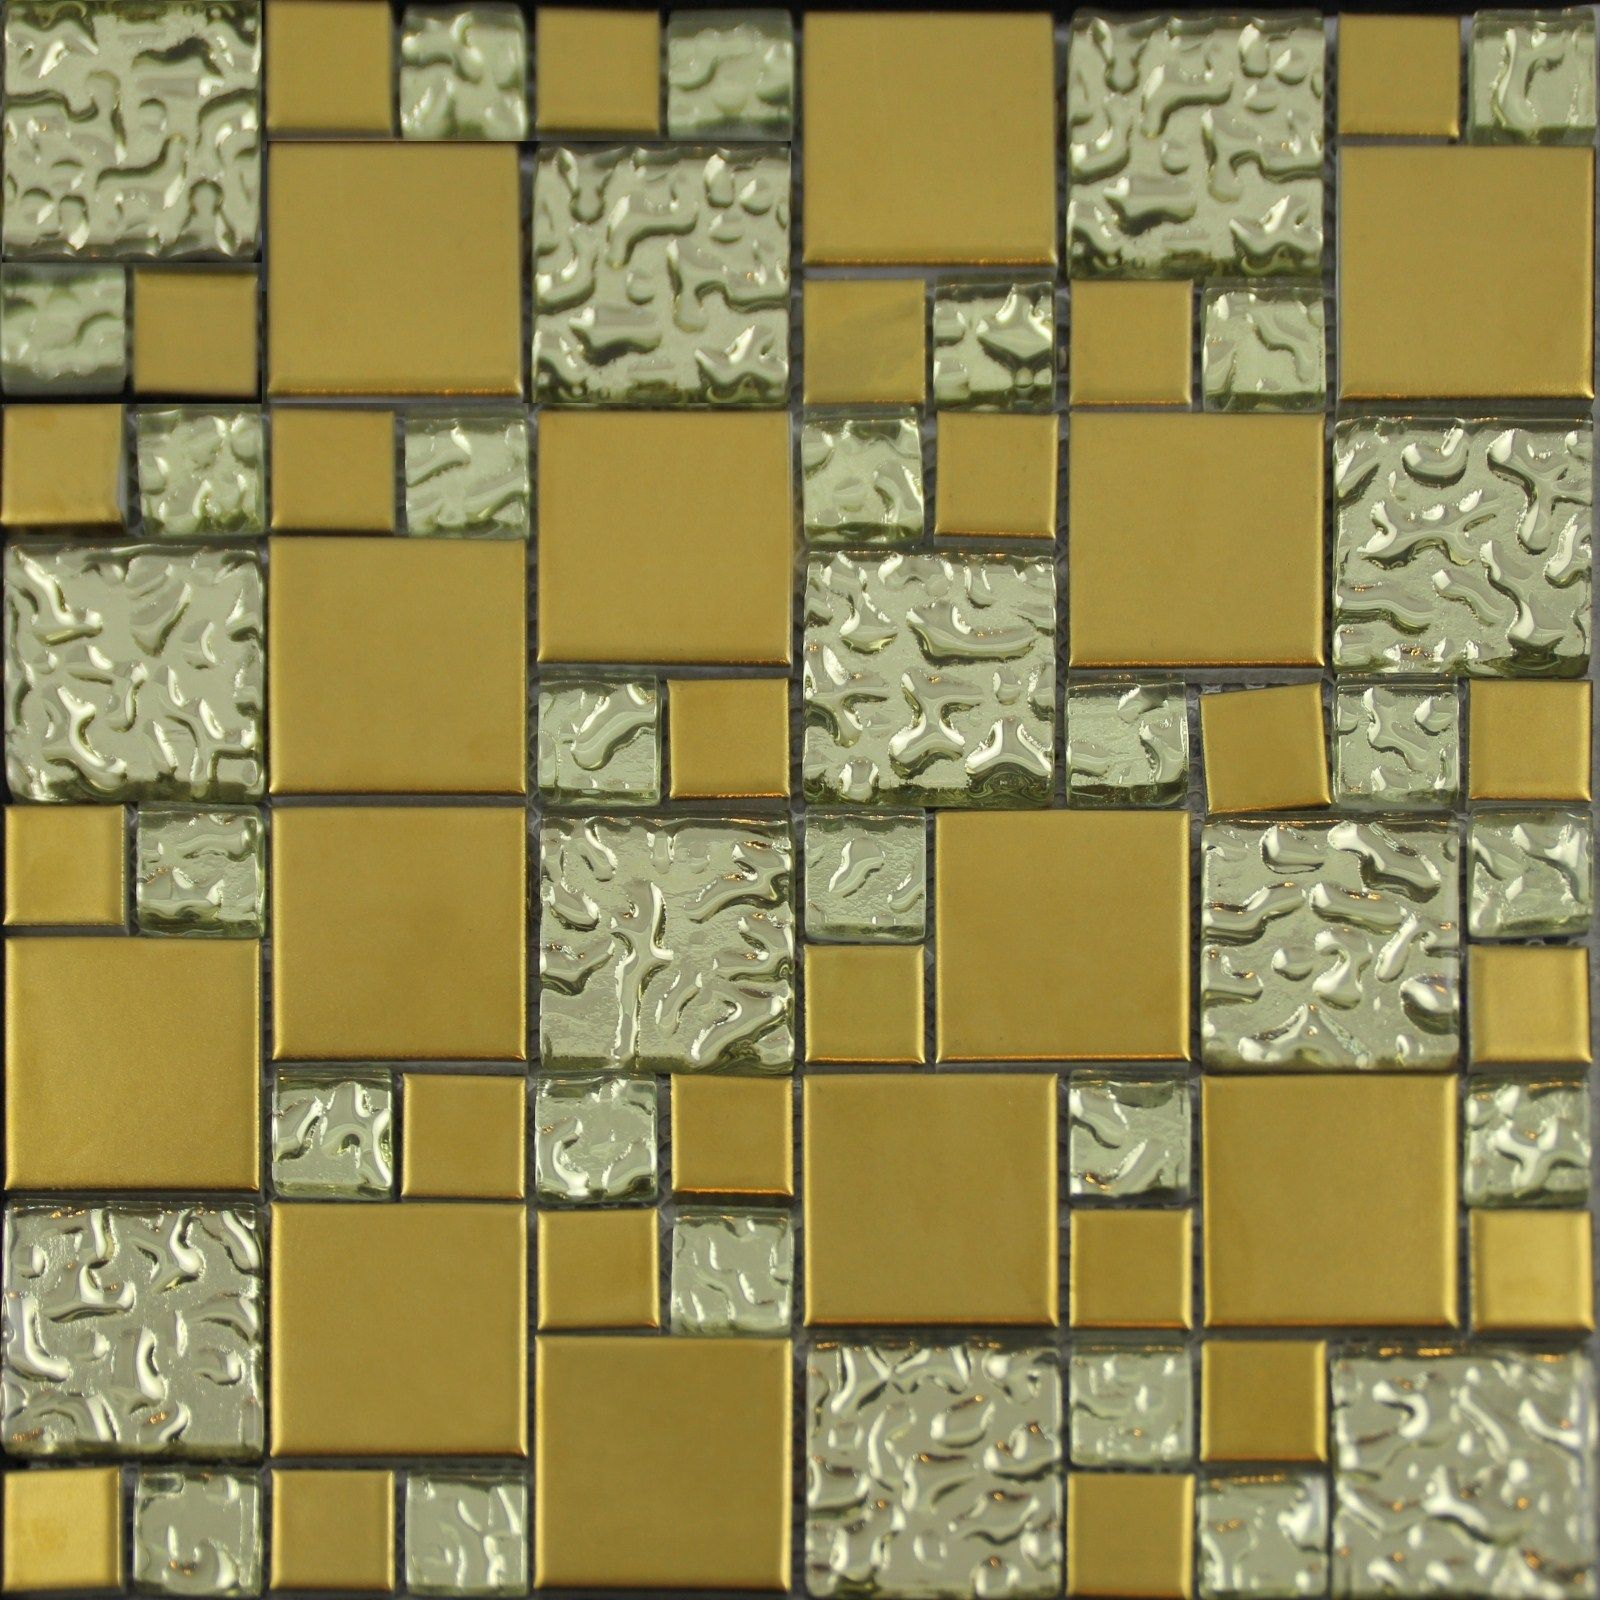 Kitchen Tiles Wall Designs Gold Porcelain And Glass Mosaic Square Tile Designs Plated Ceramic